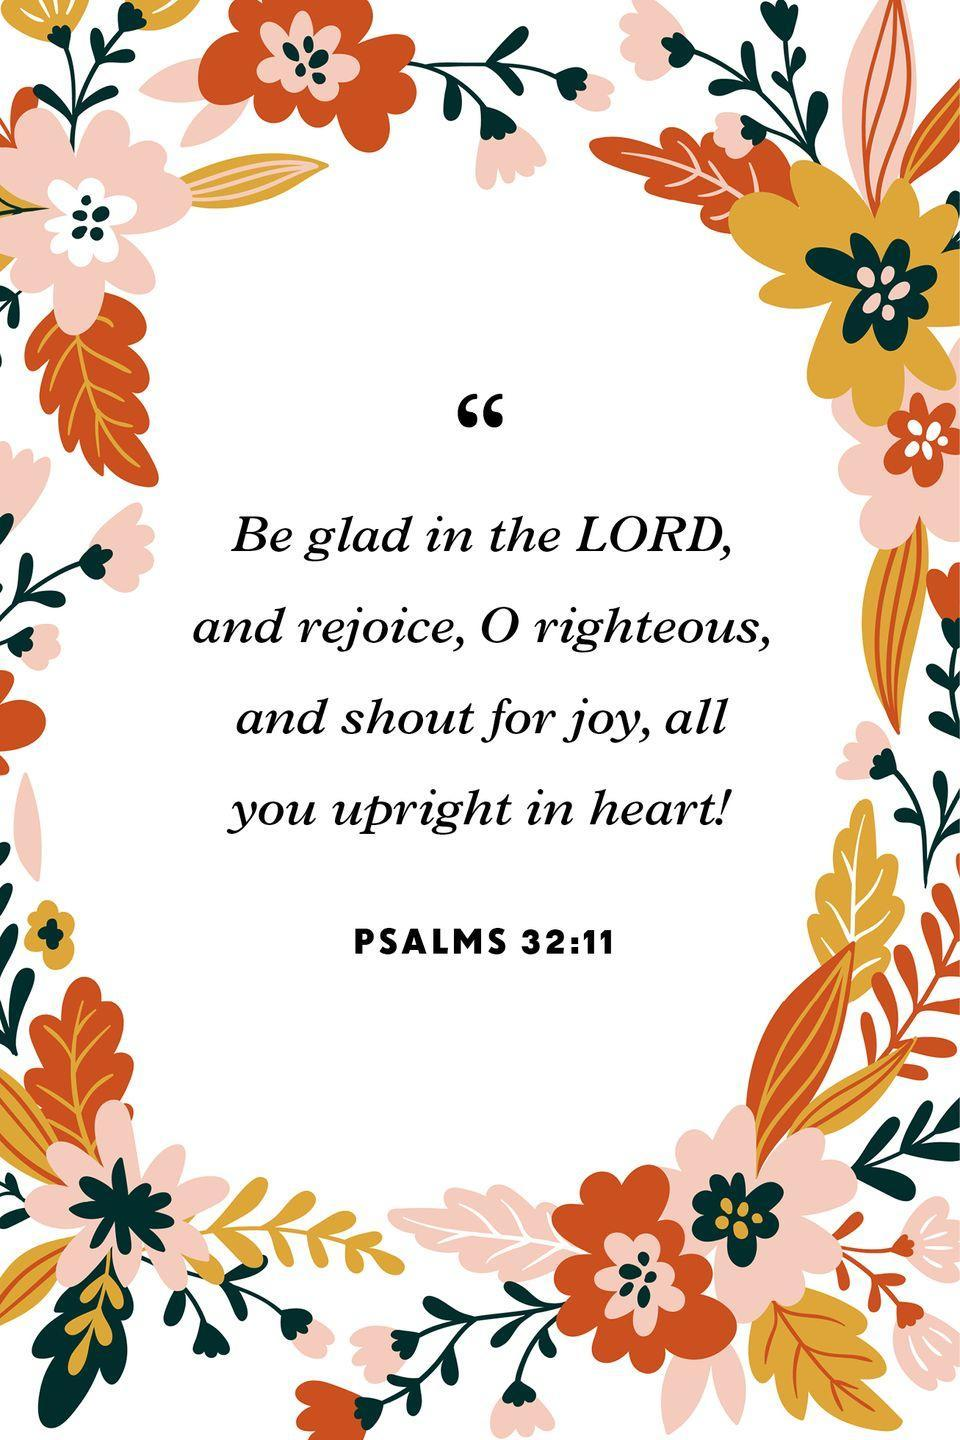 """<p>""""Be glad in the LORD, and rejoice, O righteous,<br>and shout for joy, all you upright in heart!""""</p>"""